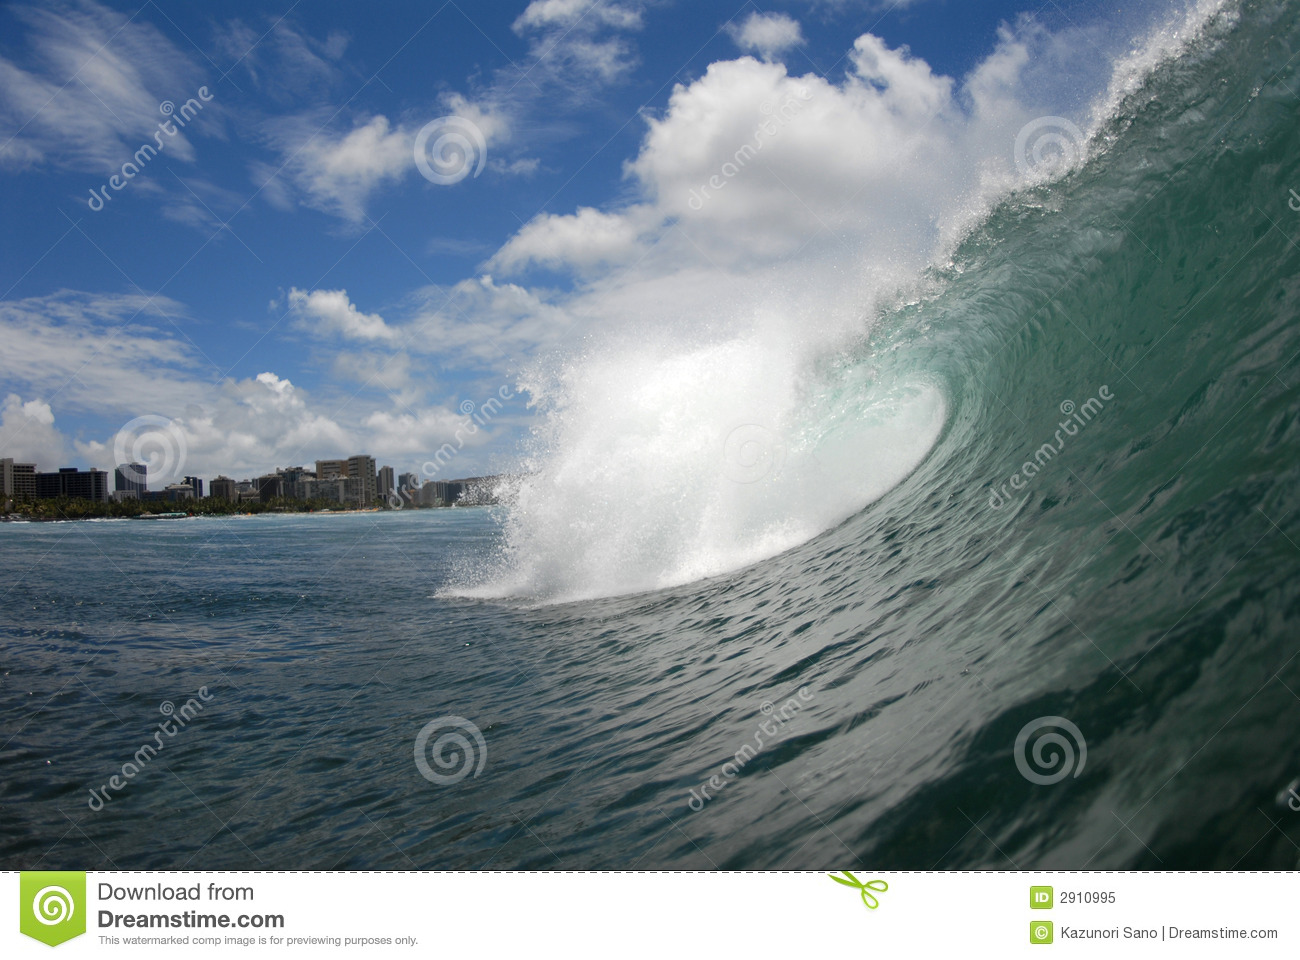 A Barreling Wave Royalty Free Stock Photo Image 2910995